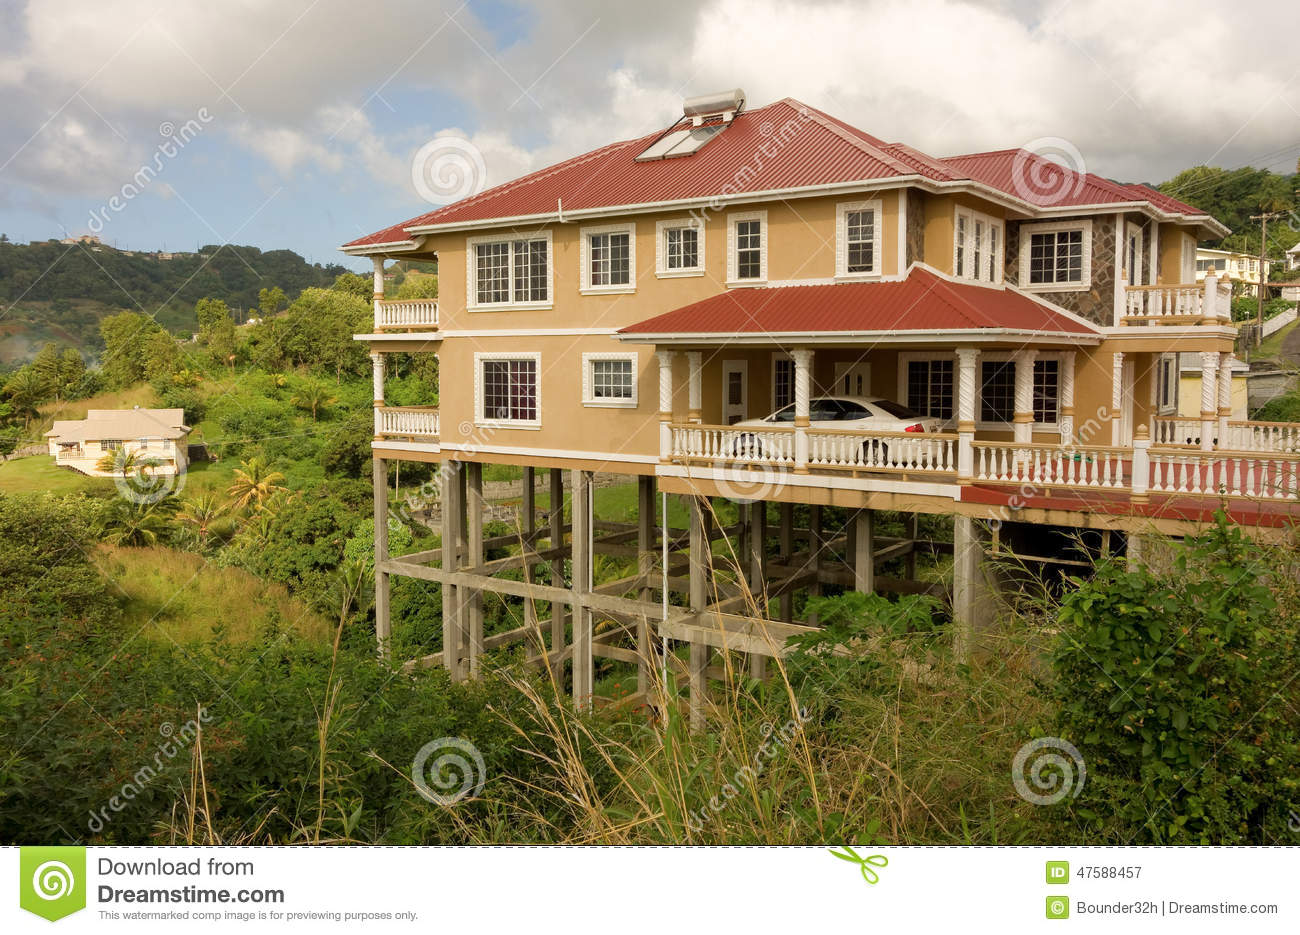 A house on stilts in the caribbean stock image image for Cost of building on a steep slope